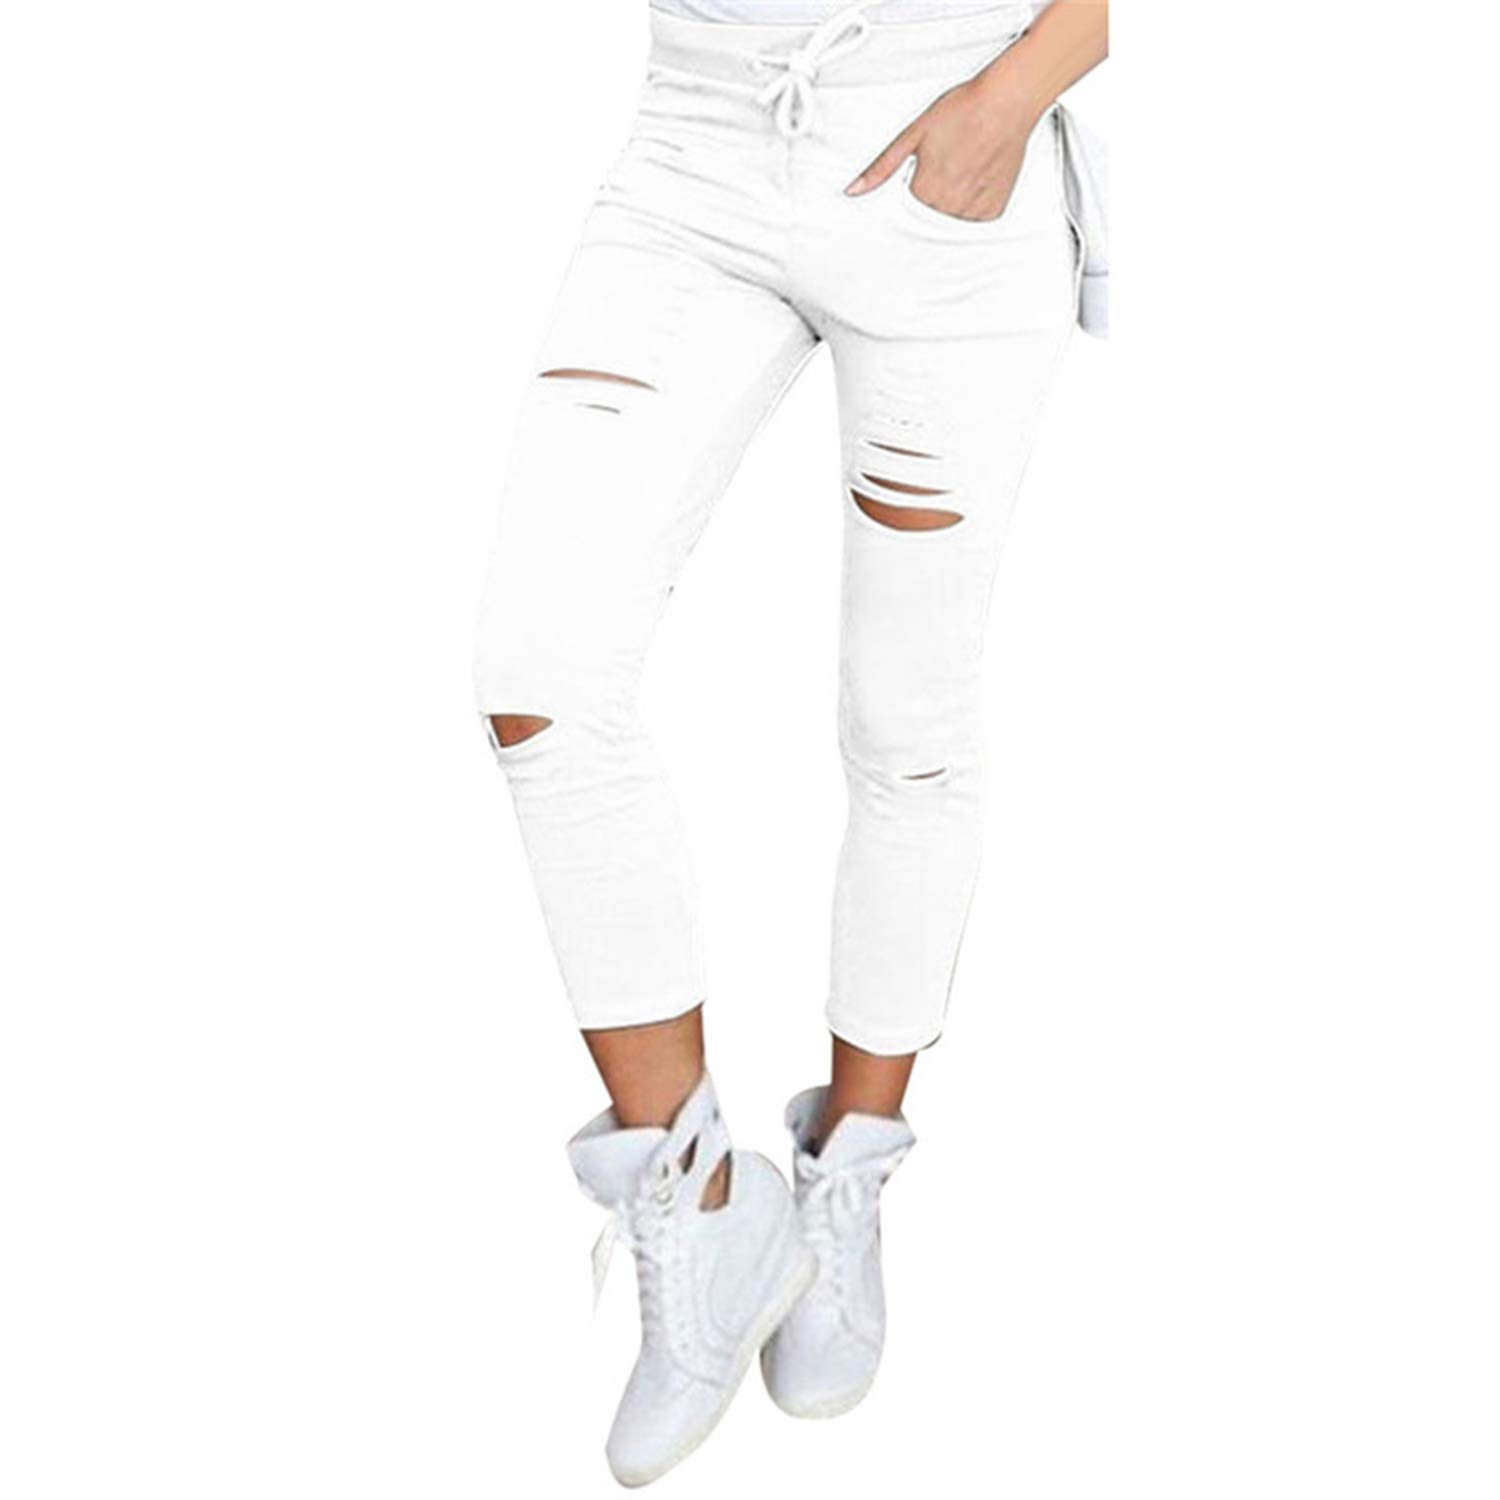 Casual Women Skinny Ripped Pants High Waist Stretch Slim Holes Pencil Pants Leggings Trousers for Female Large Size